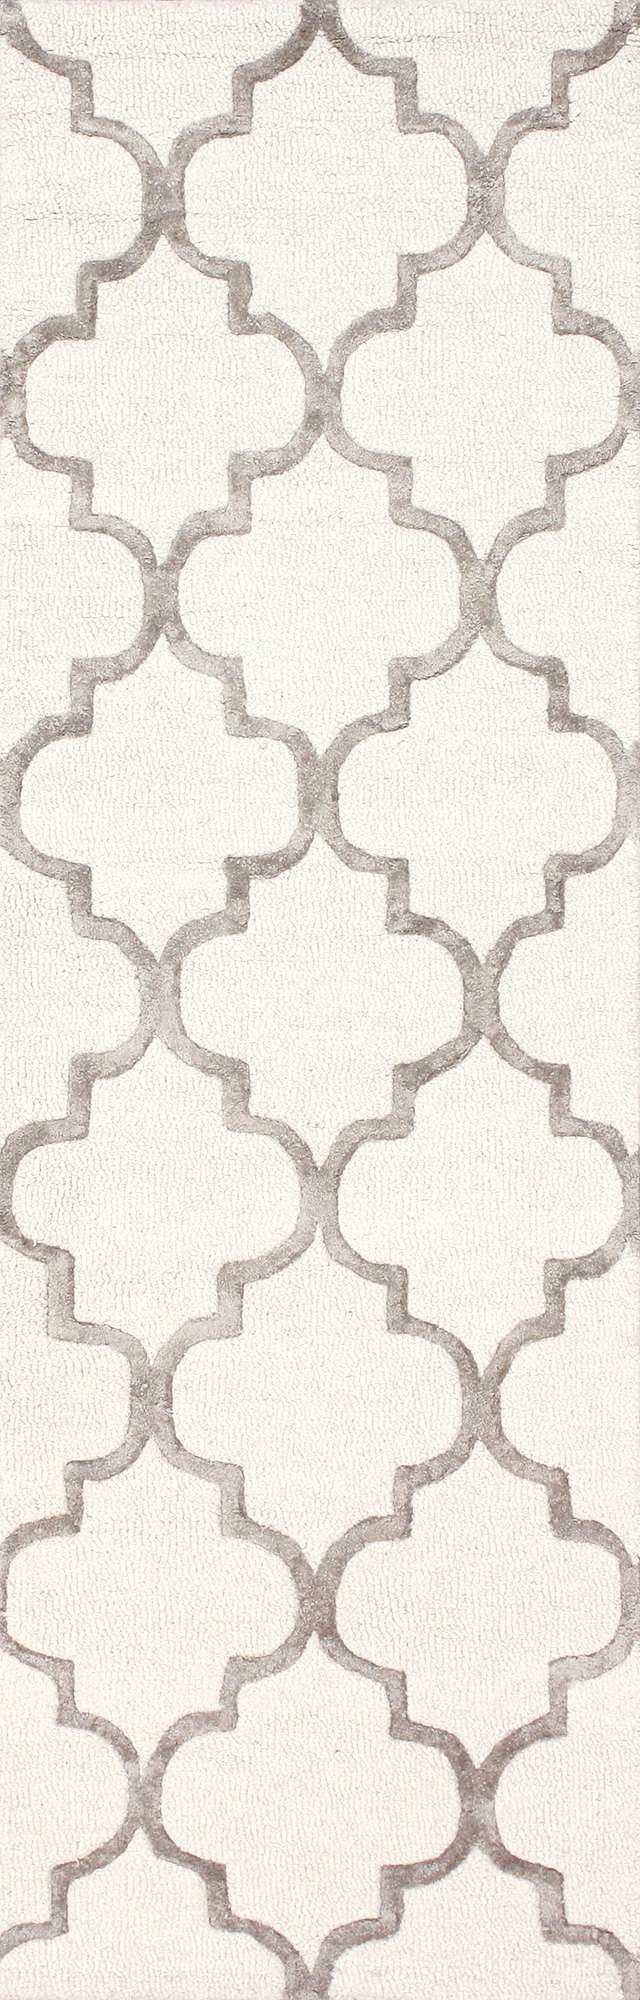 Scalloped lines combine to form an elegant trellis design in the Rugs USA Satara Edison Rug. The soft, neutral tones of this rug enhance many home decors, while the repeating quatrefoils patterned across the rug gives it a sense of contemporary sophistication. The understated elegance of the close-set trellis pattern gives it an air of luxury which causes the rug to be eye-catching but not overwhelming. Made with a blend of wool and viscose, it offers soft and luxurious comfort underfoot…